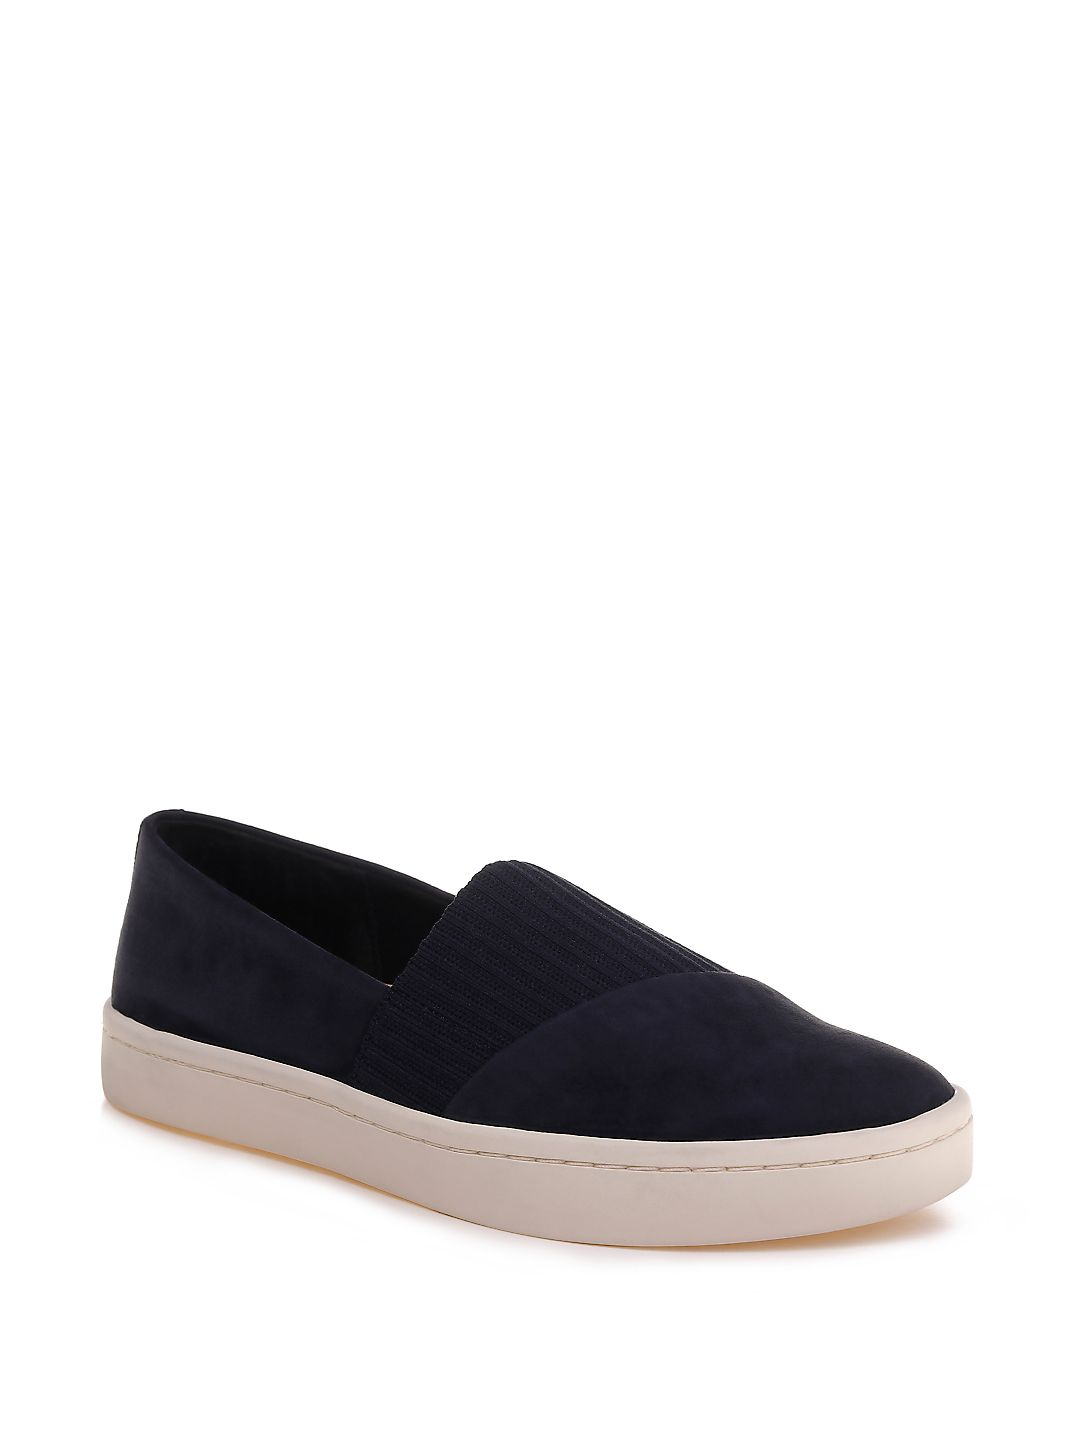 Nouvel Suede Slip-On Sneakers